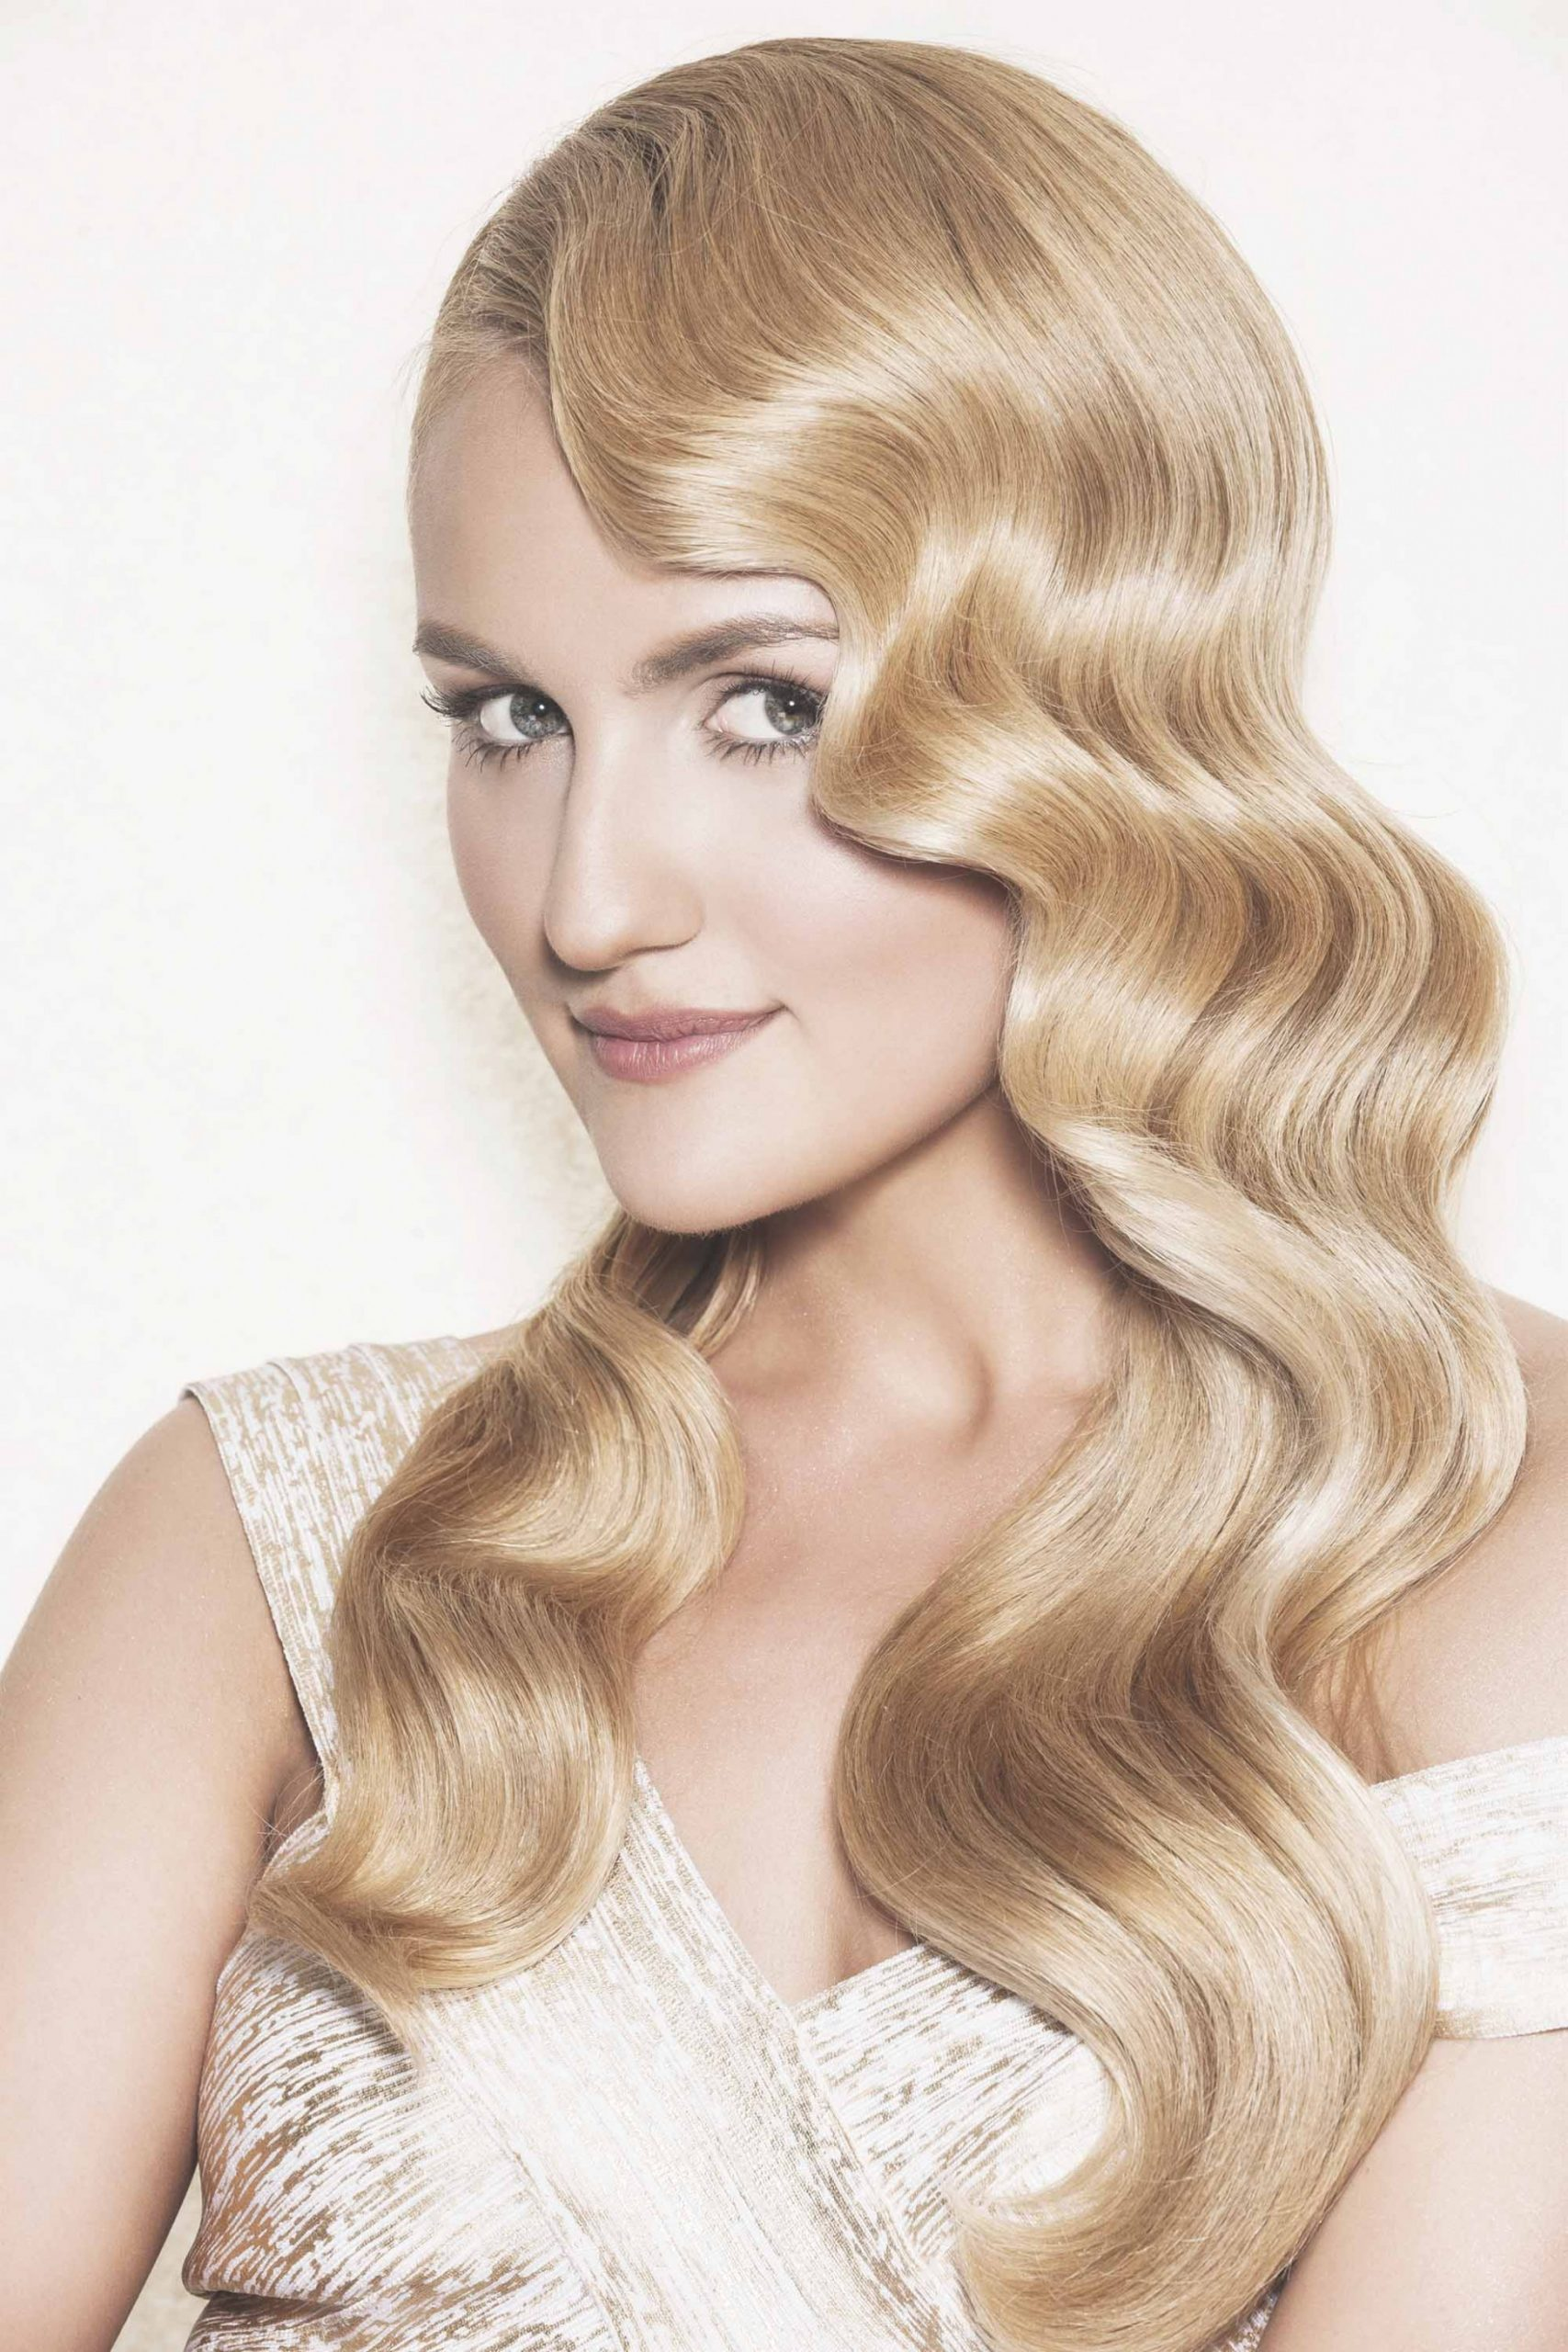 10 Glam Great Gatsby Hairstyles For Halloween (and Beyond) Gatsby Hairstyle For Long Hair